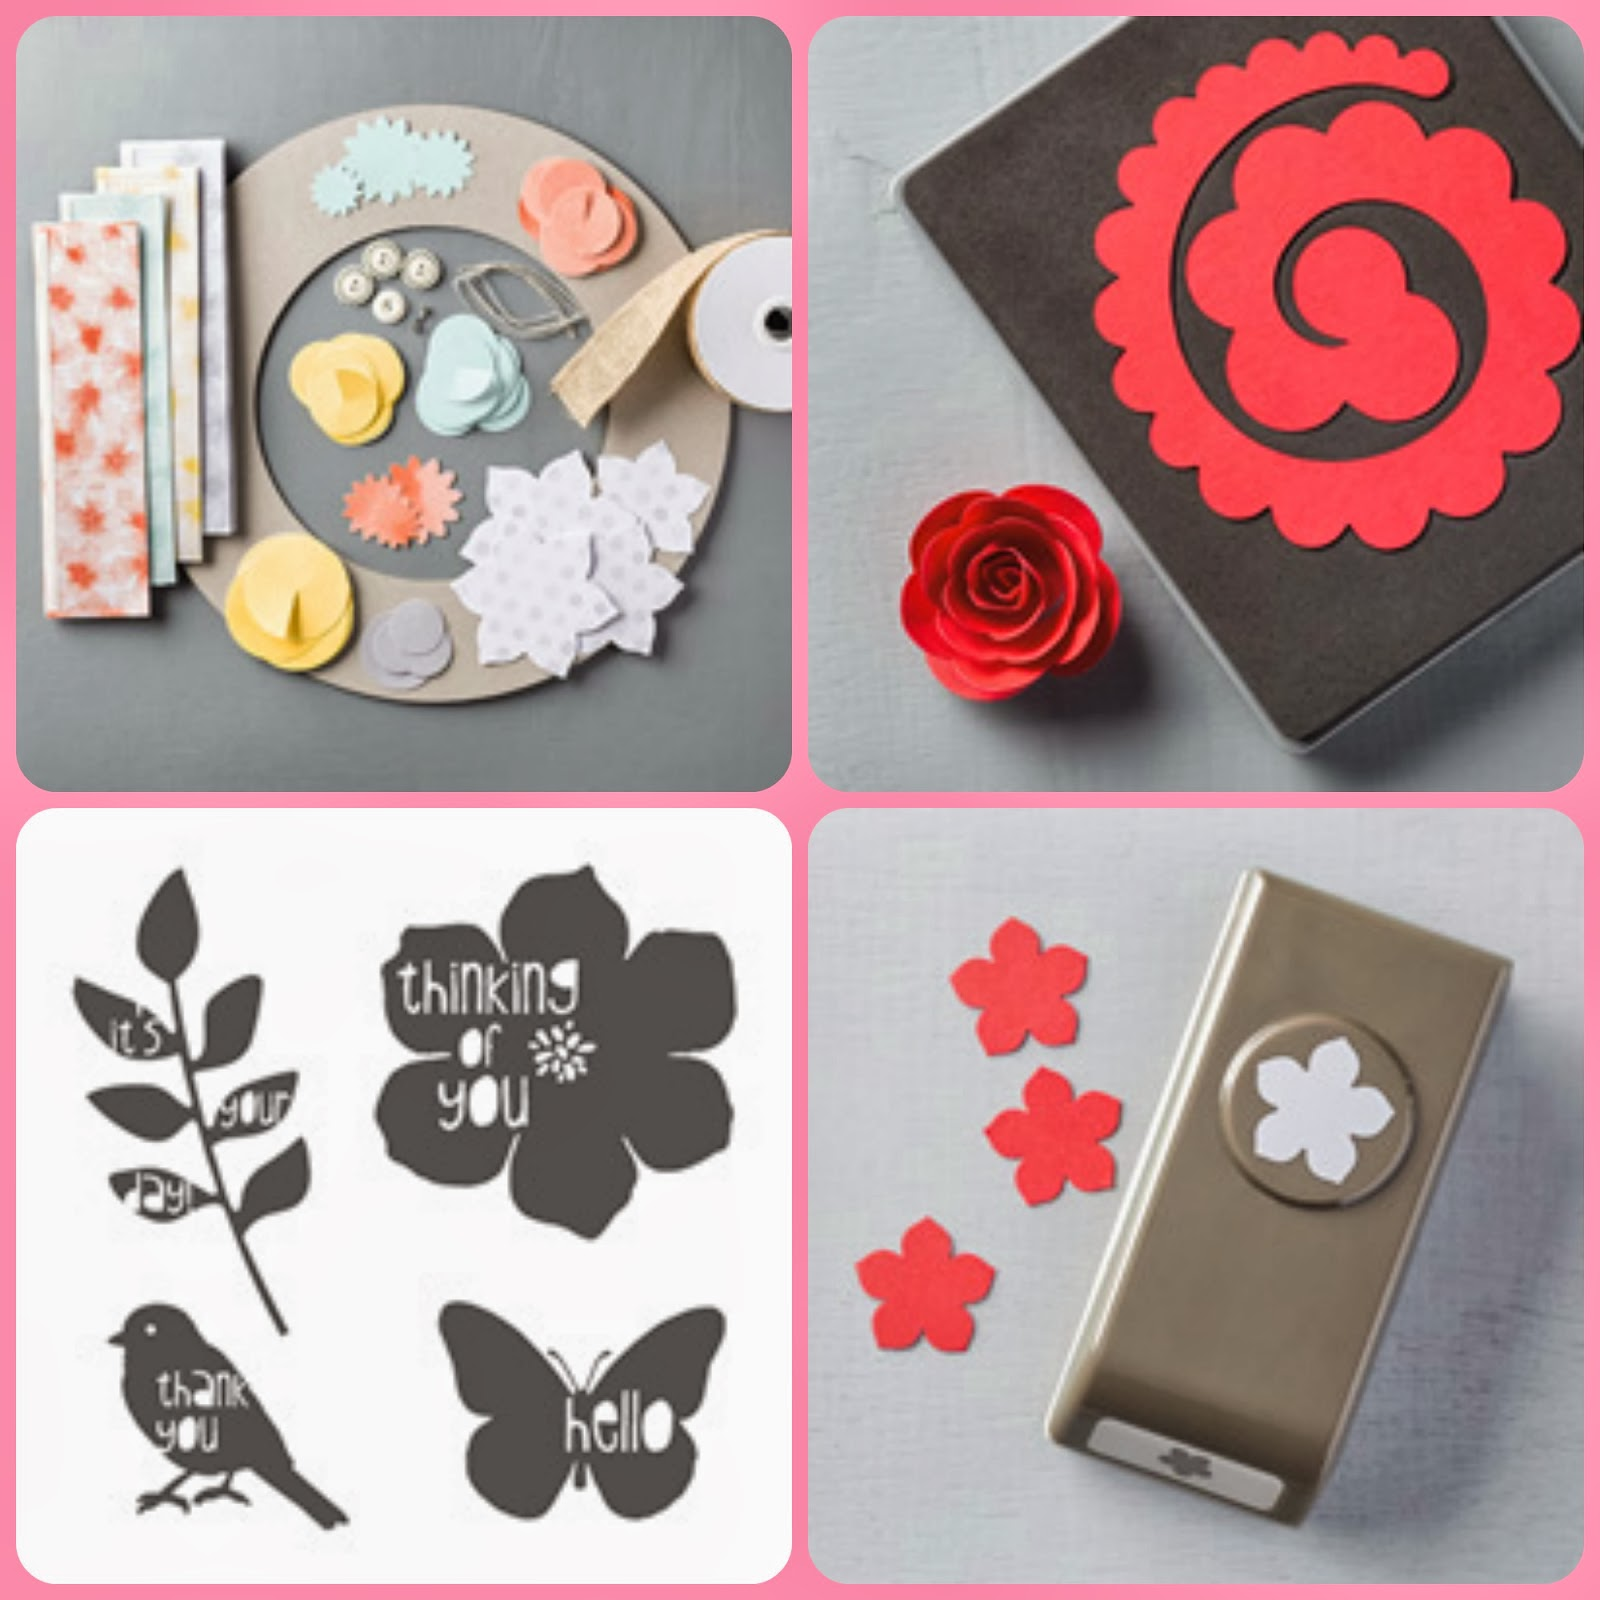 Tips techniques on how to sell your handmade crafts easily my project was inspired by the gorgeous new just need to make it stampin up burlap blooms wreath kit the the new spiral flowers original die which is mightylinksfo Choice Image